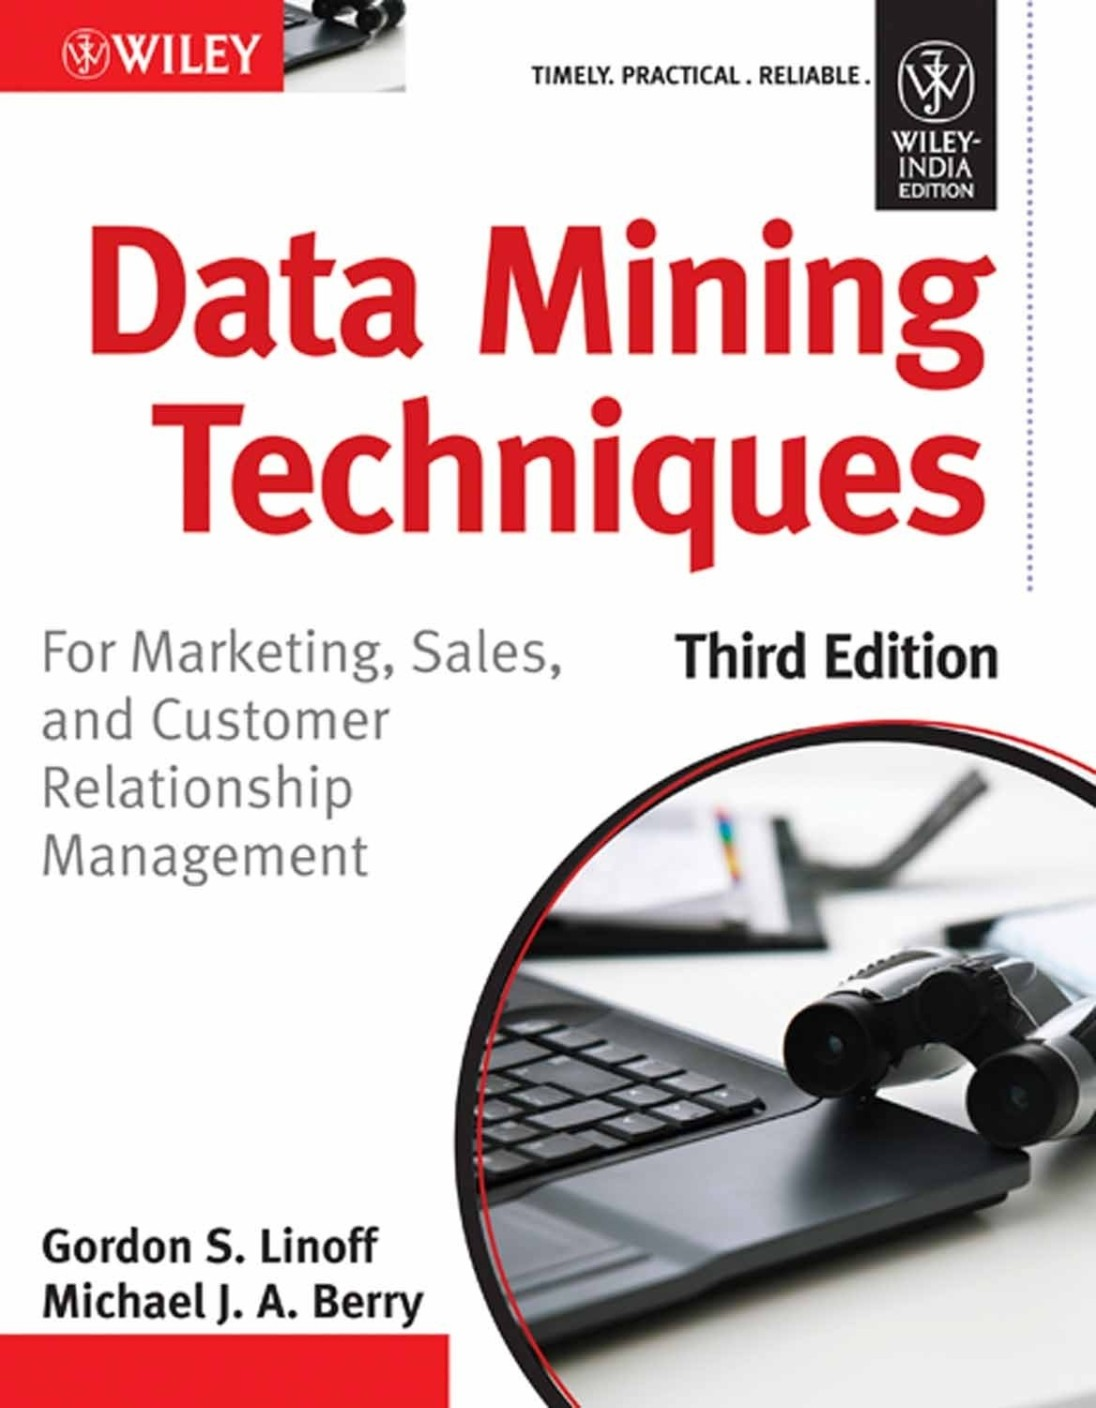 data mining techniques for marketing sales and customer relationship management third